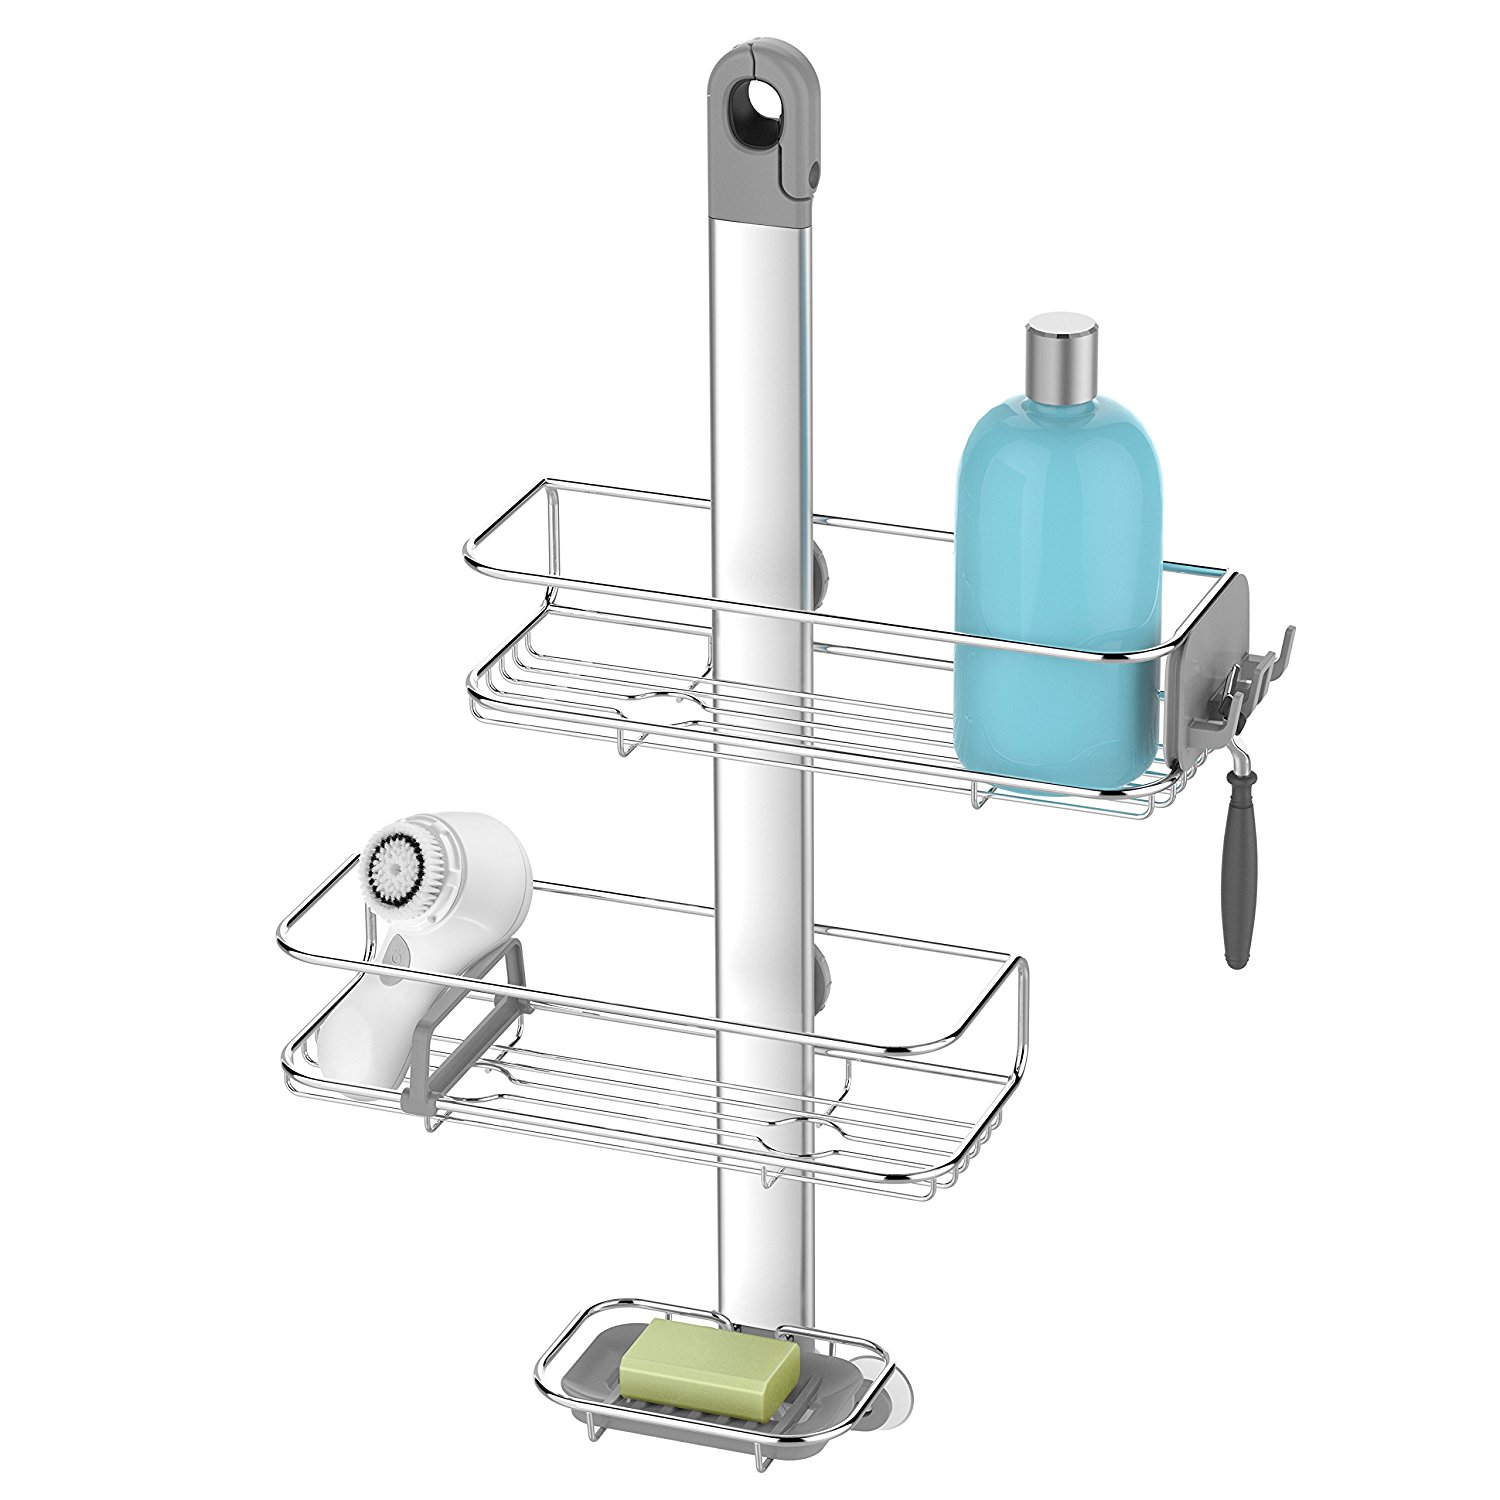 Simplehuman Adjustable Shower Caddy